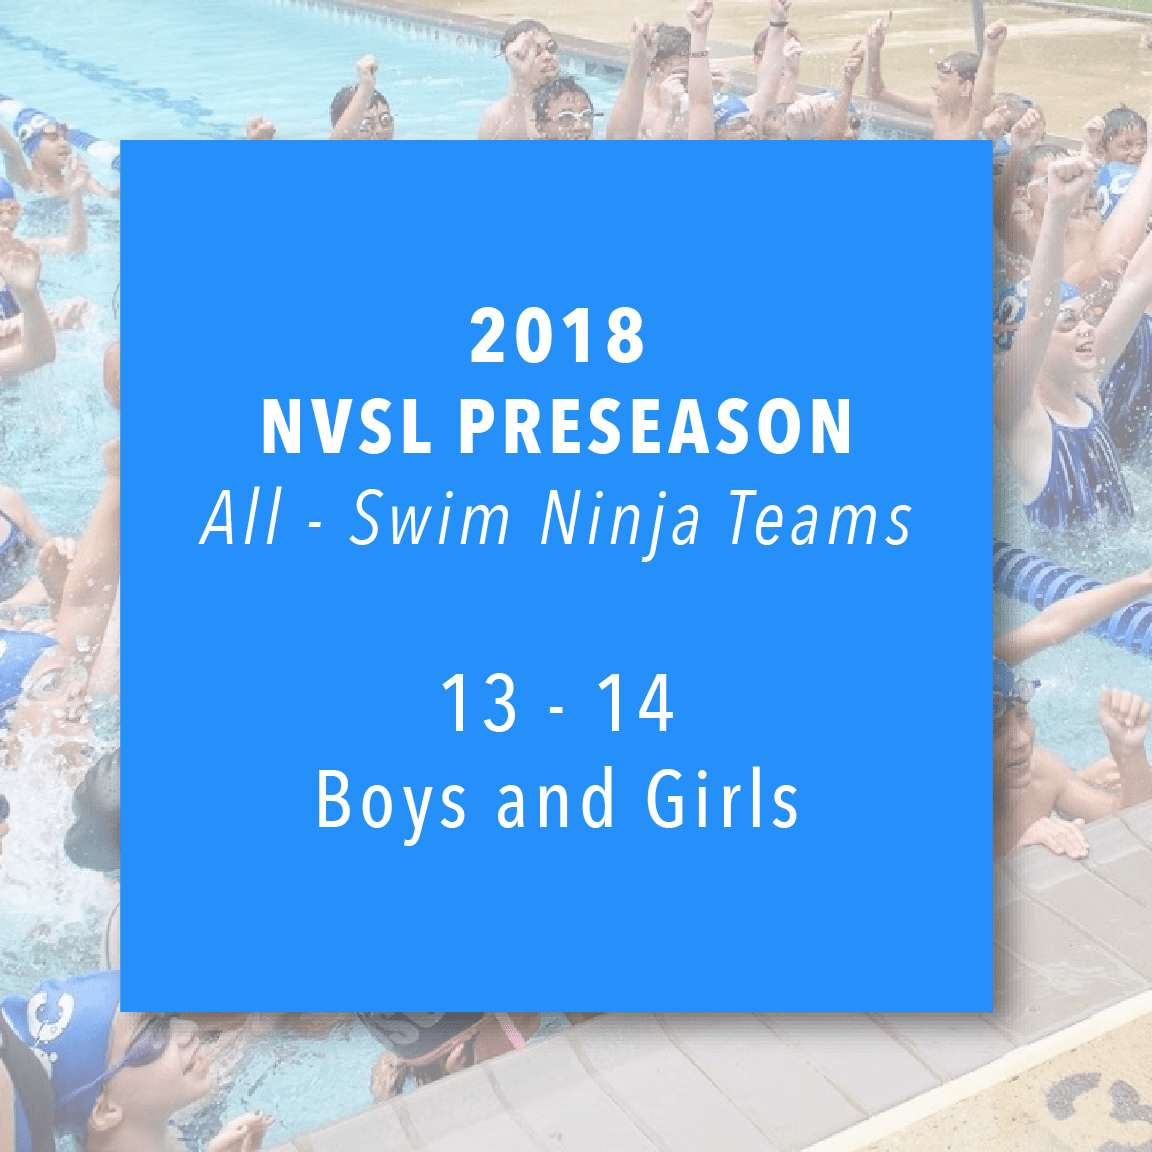 2018 NVSL Preseason All-Swim Ninja: 13-14s